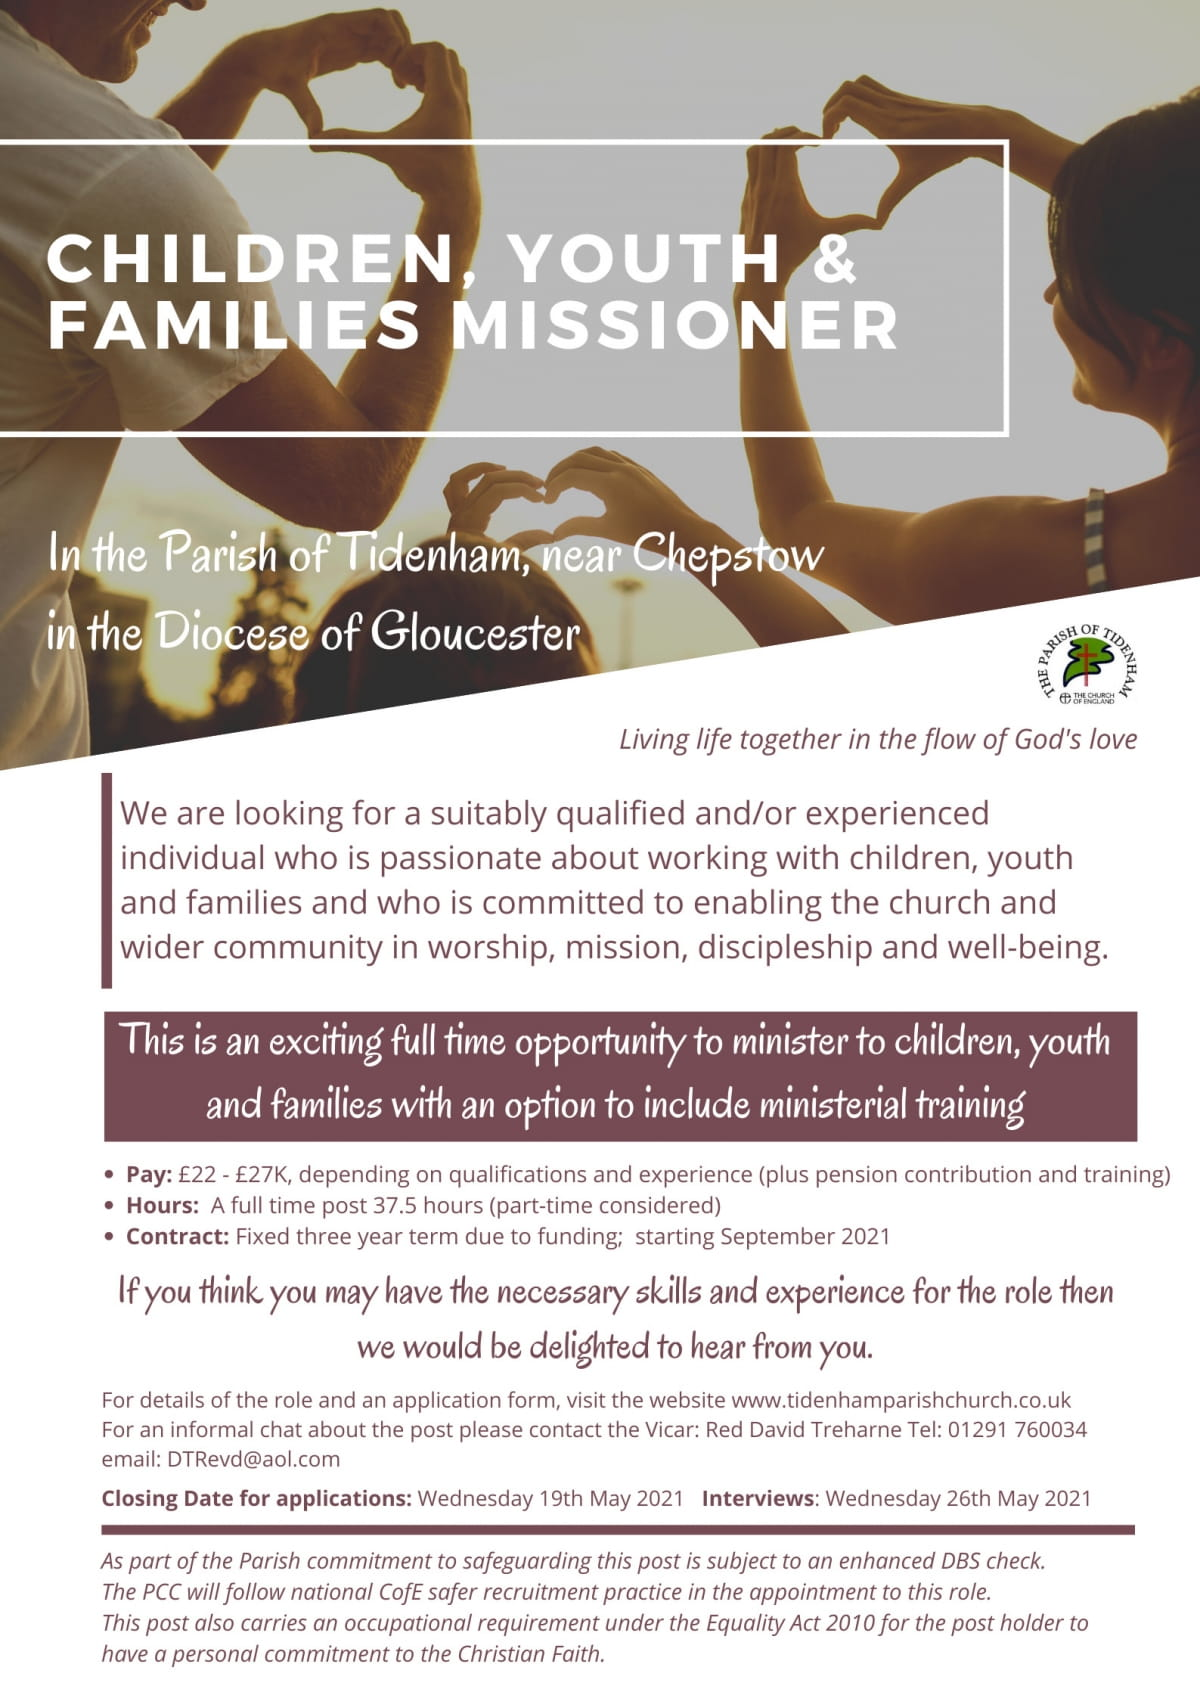 Children, Youth and Families Minster job advert